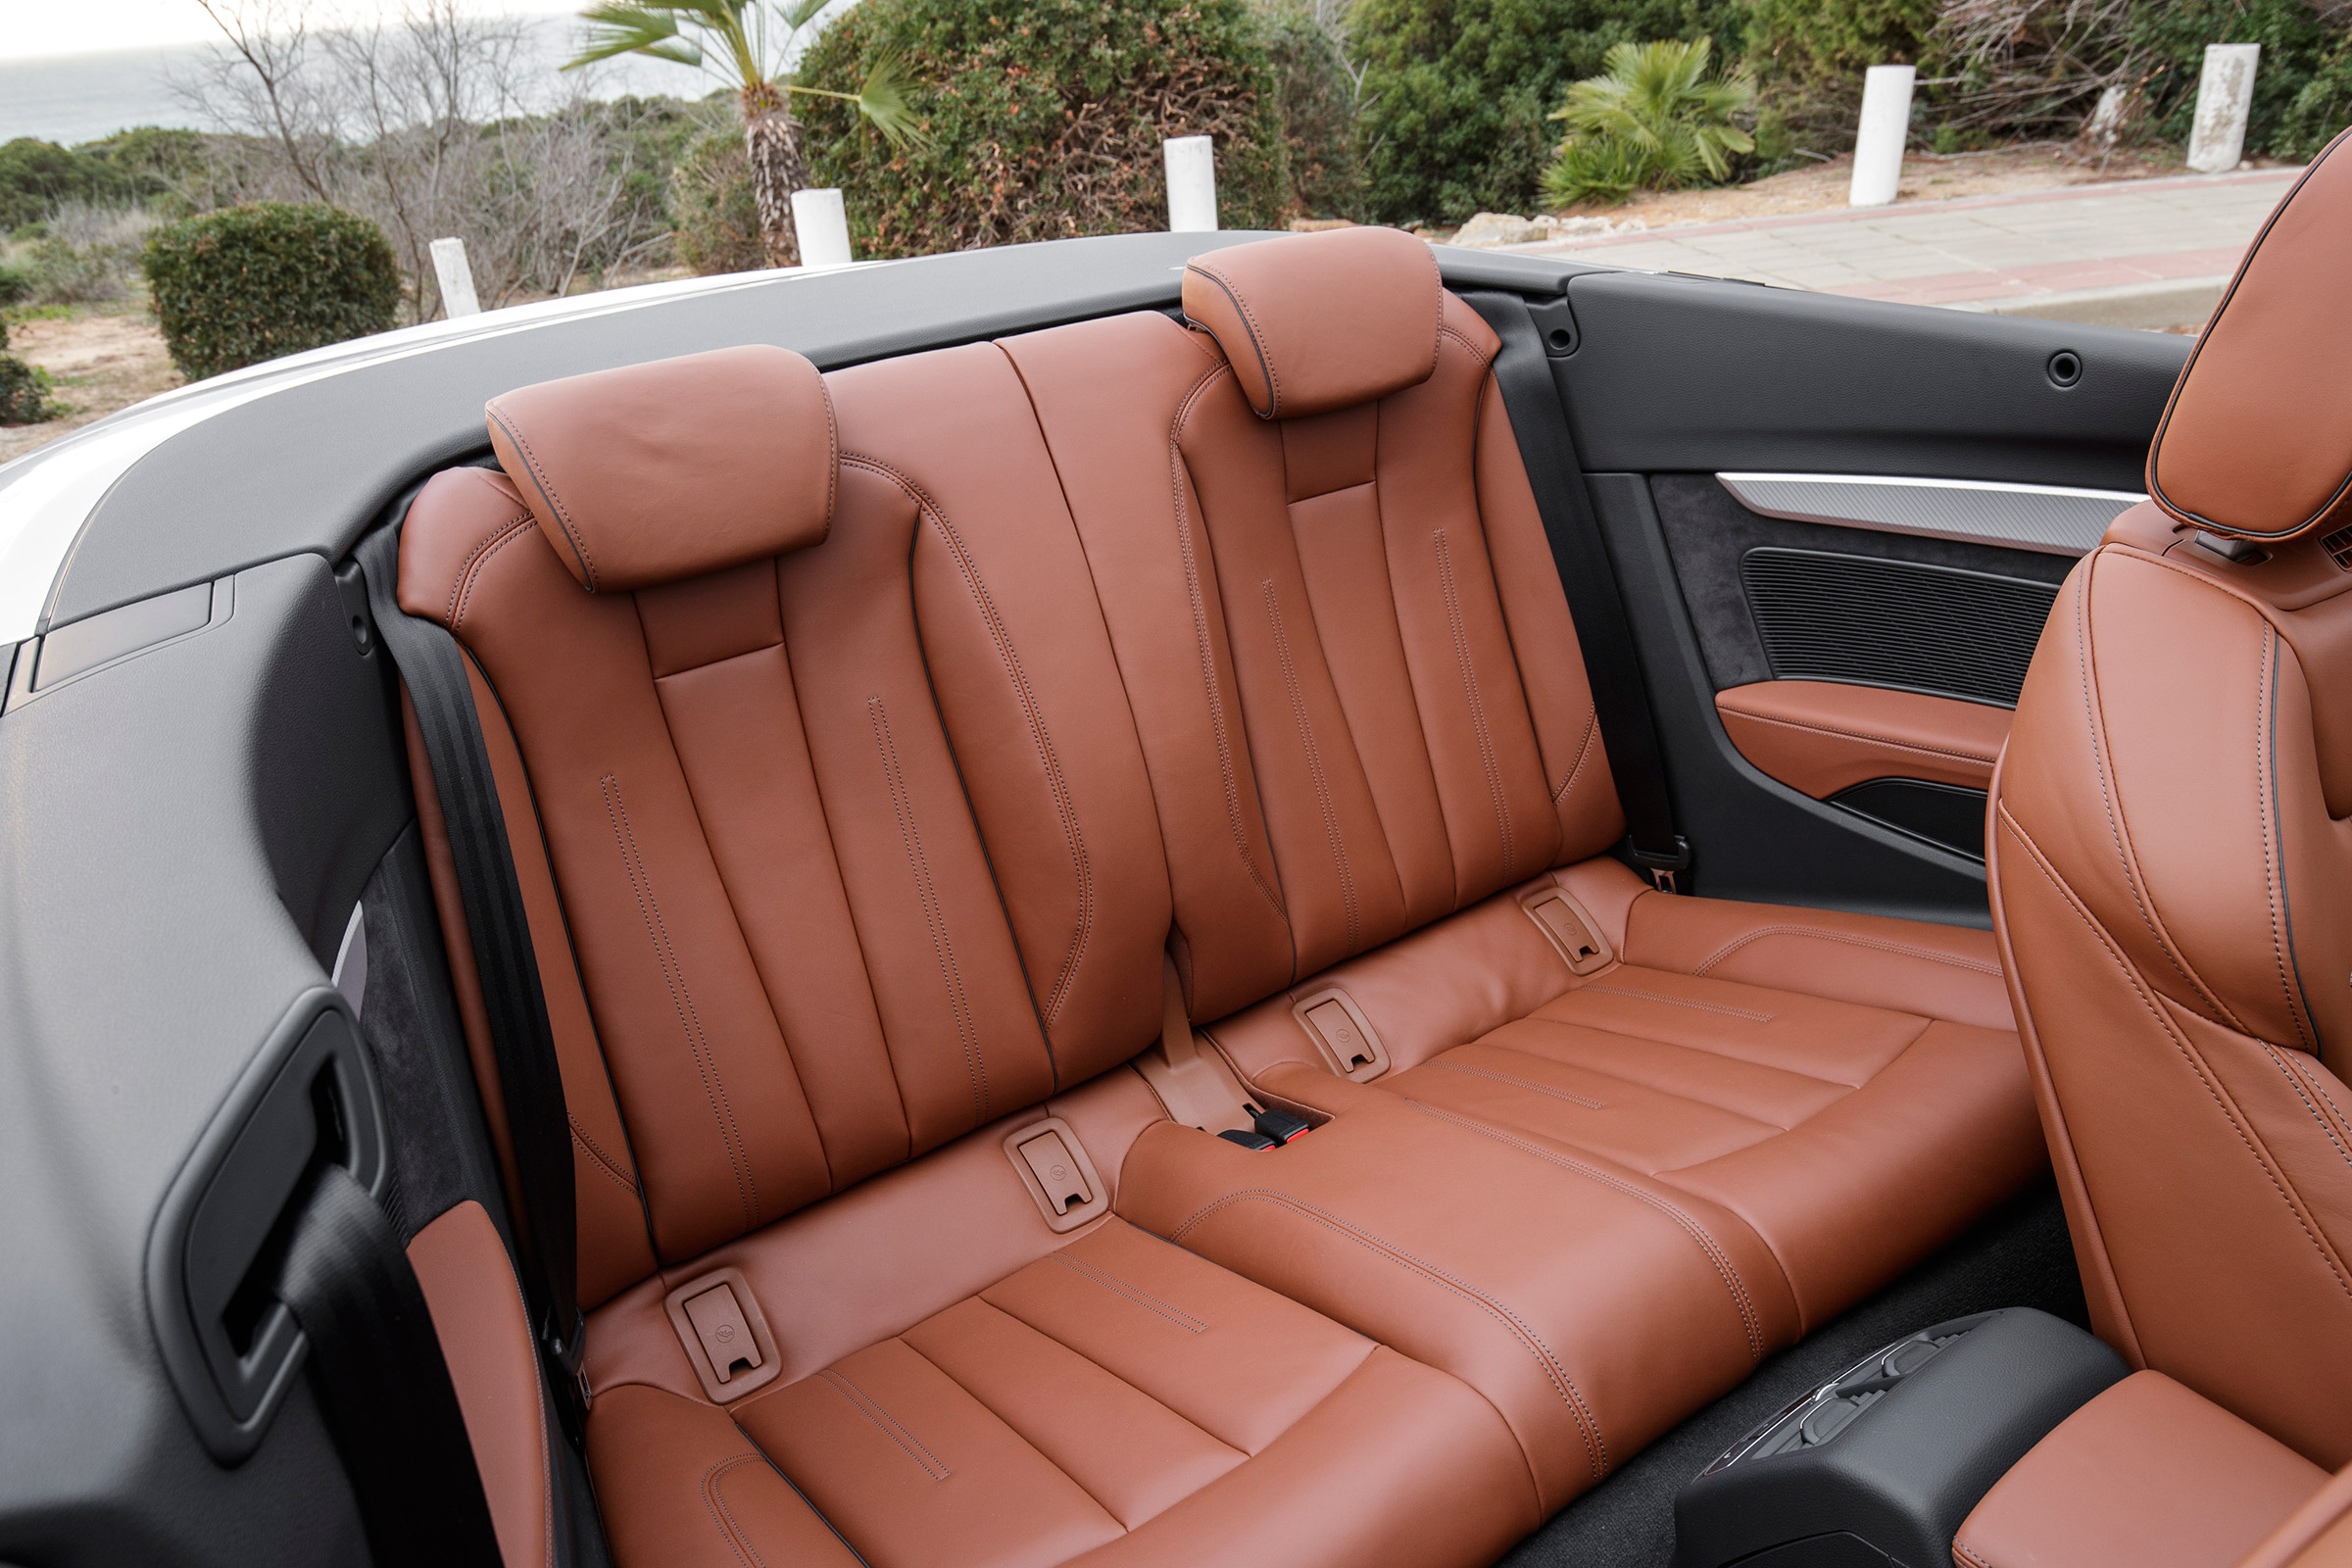 2017 Audi A5 Cabriolet Interior Seats Rear (View 8 of 18)